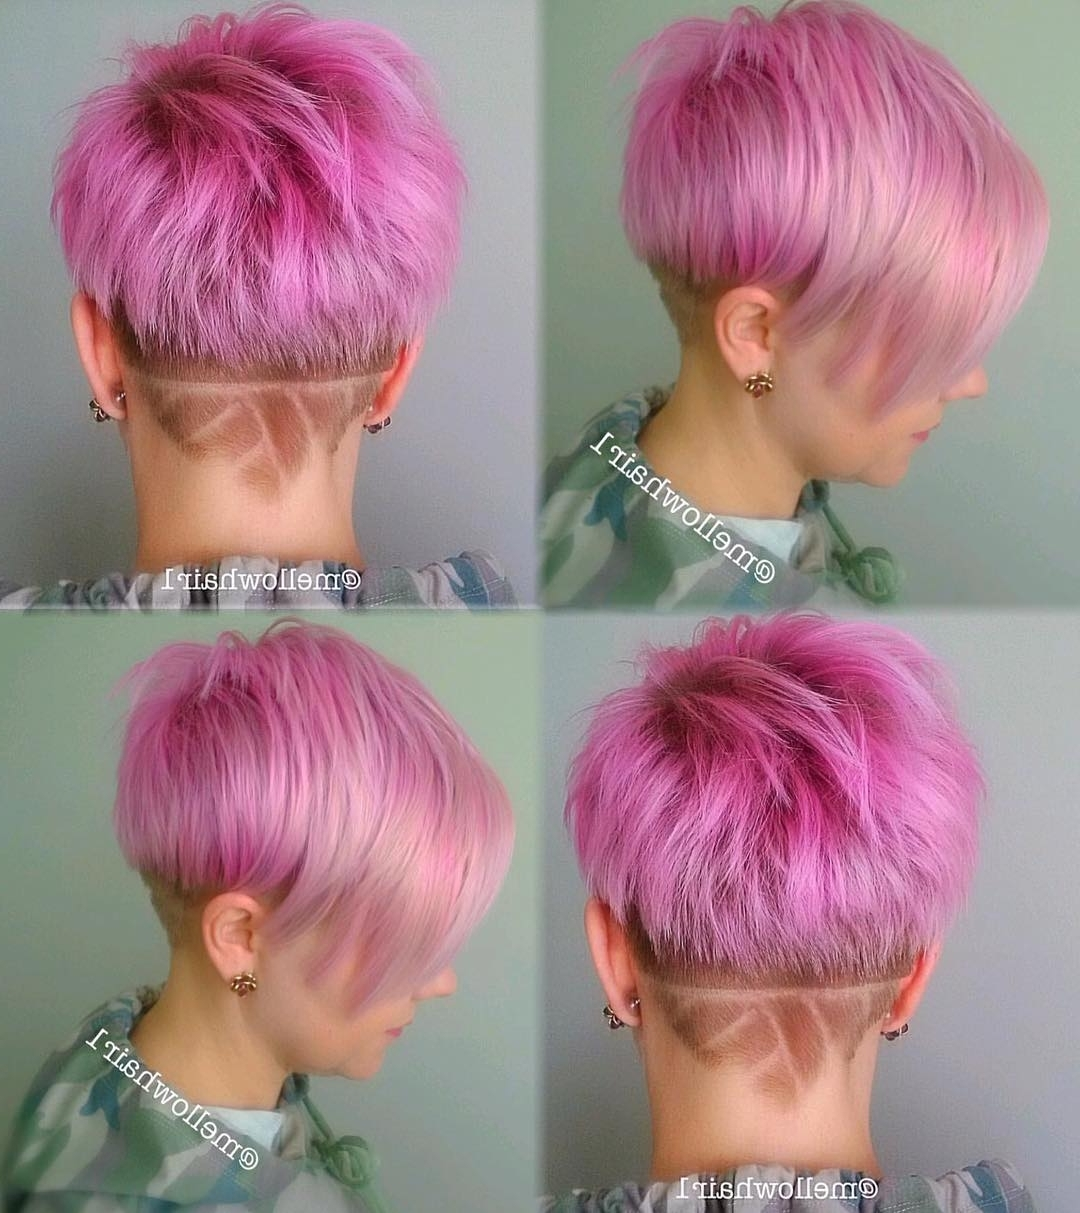 40 Cool And Contemporary Short Haircuts For Women – Popular Haircuts Inside Fashionable Contemporary Pixie Hairstyles (View 7 of 20)